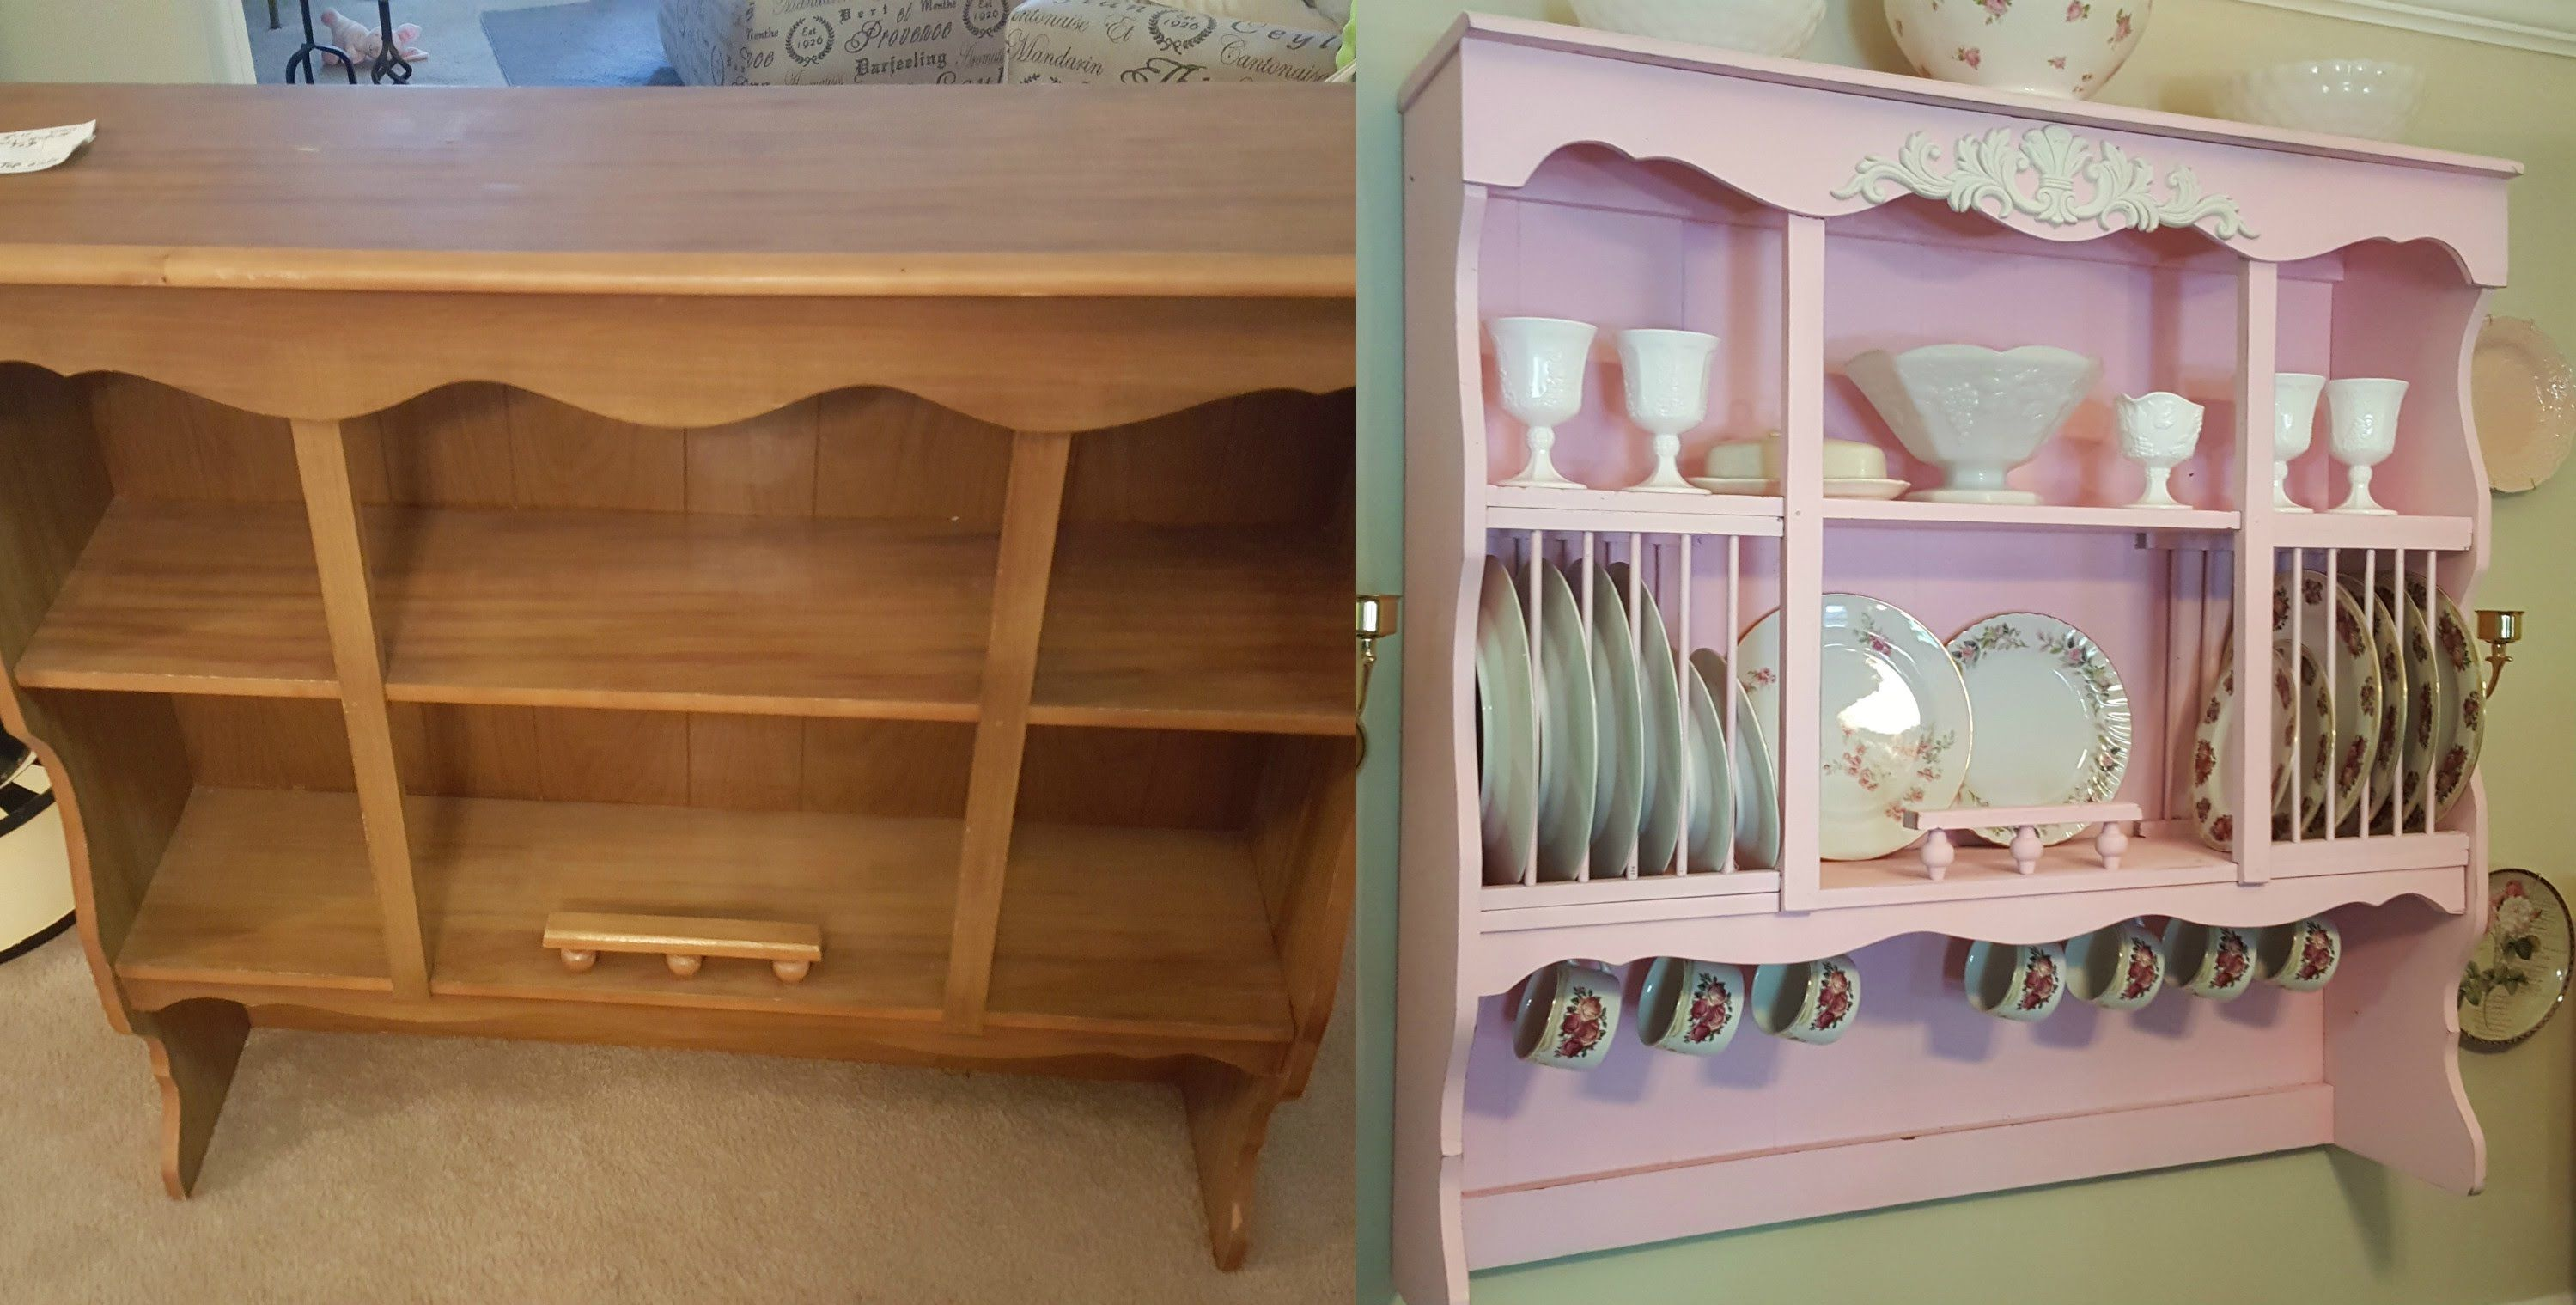 Diy Shabby Chic Wall Mounted China Cabinet Hutch Budget Project